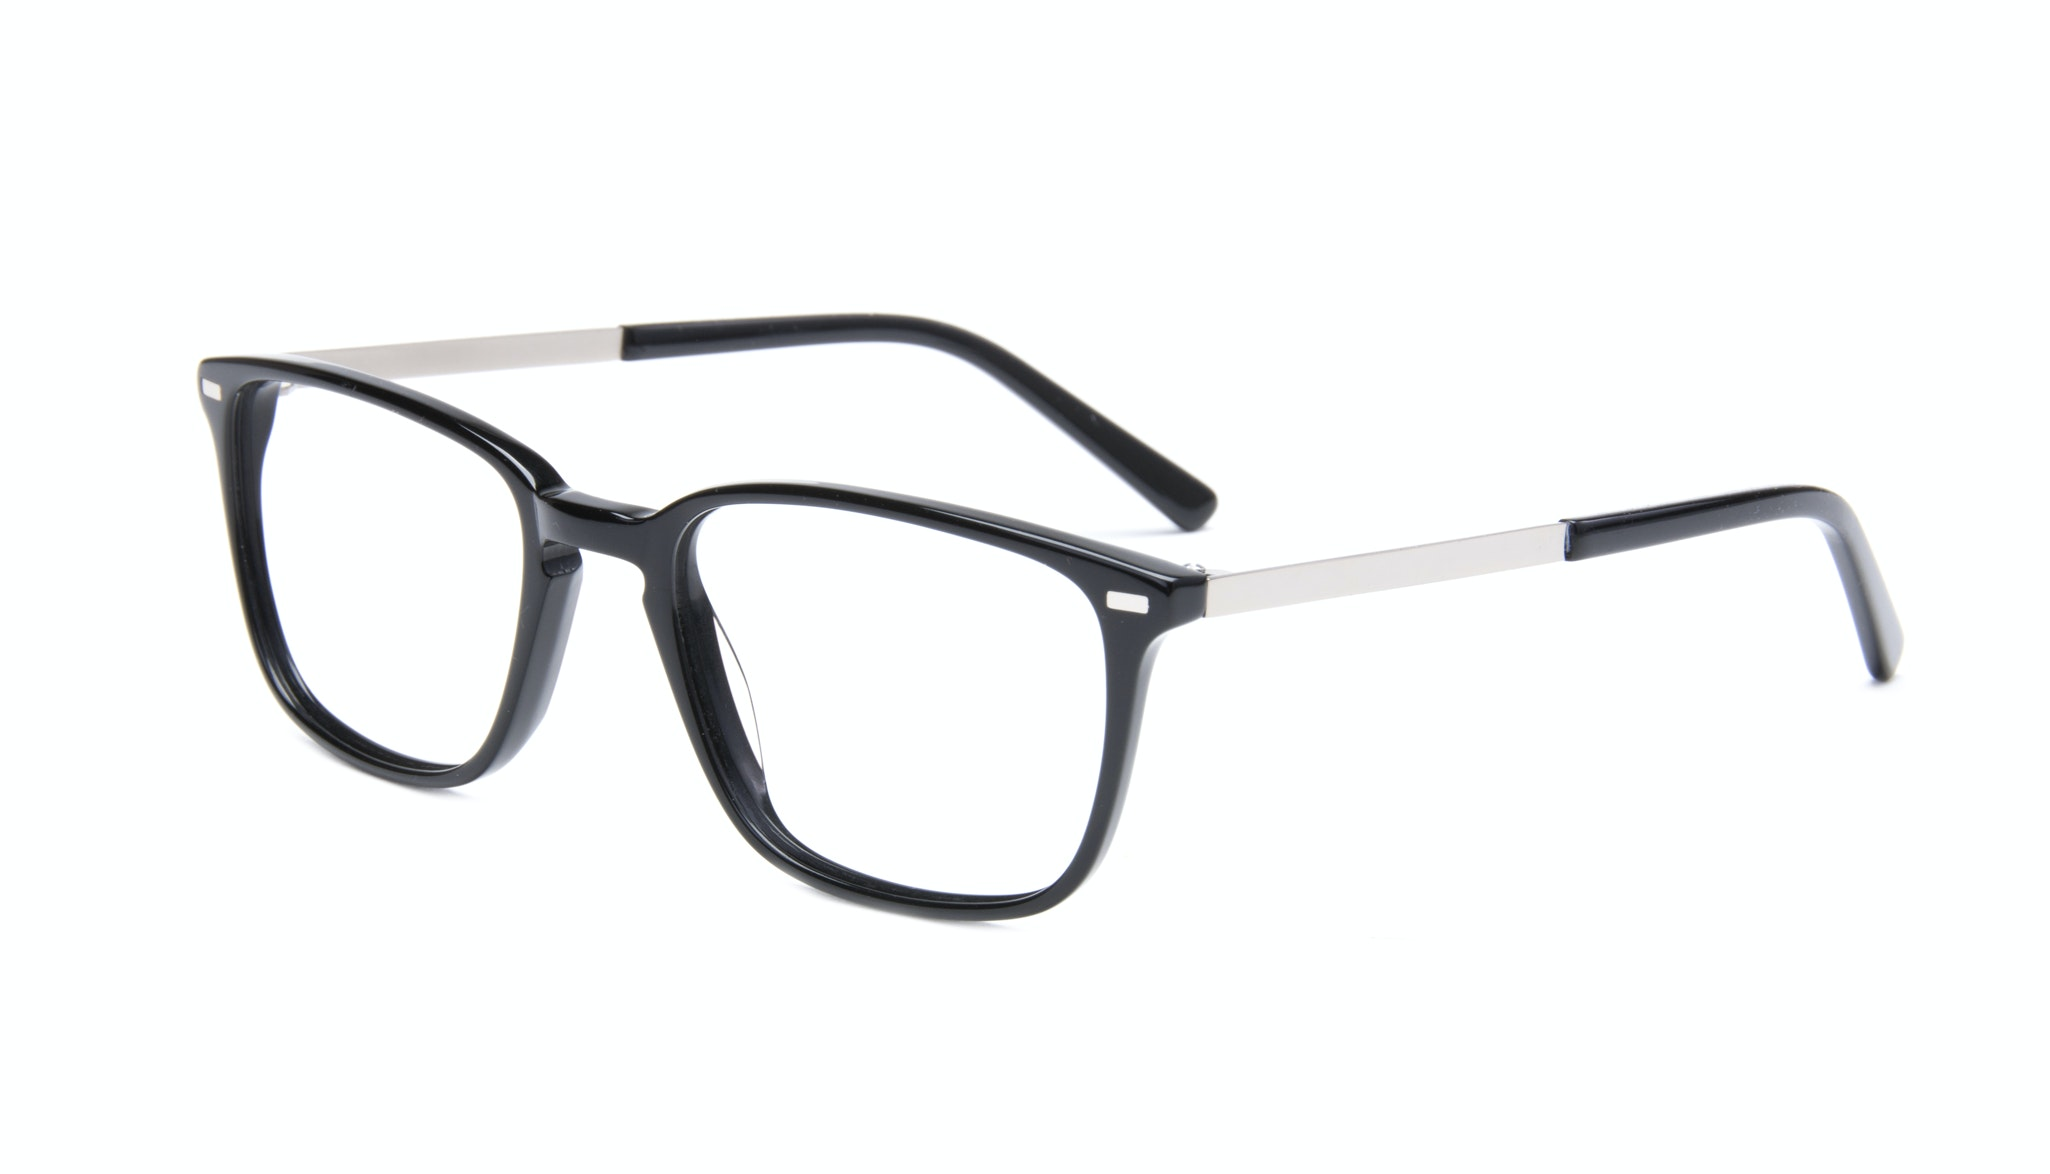 Affordable Fashion Glasses Rectangle Eyeglasses Men Sharp Black Tilt